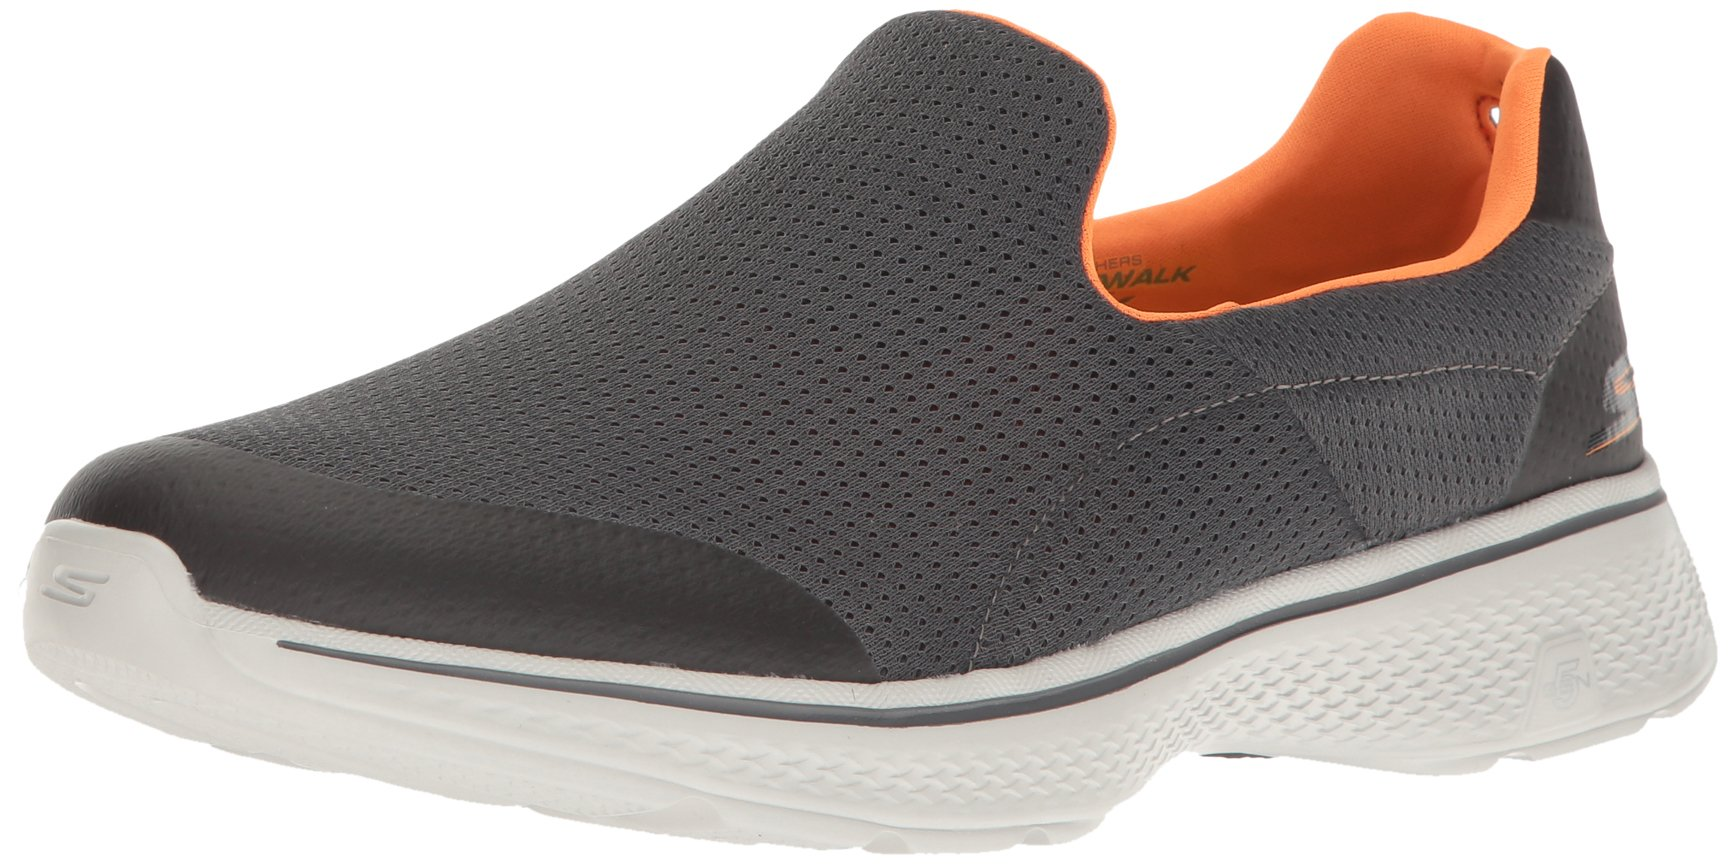 Skechers Performance Men's Go Walk 4 Incredible Walking Shoe, Charcoal/Orange, 10 M US